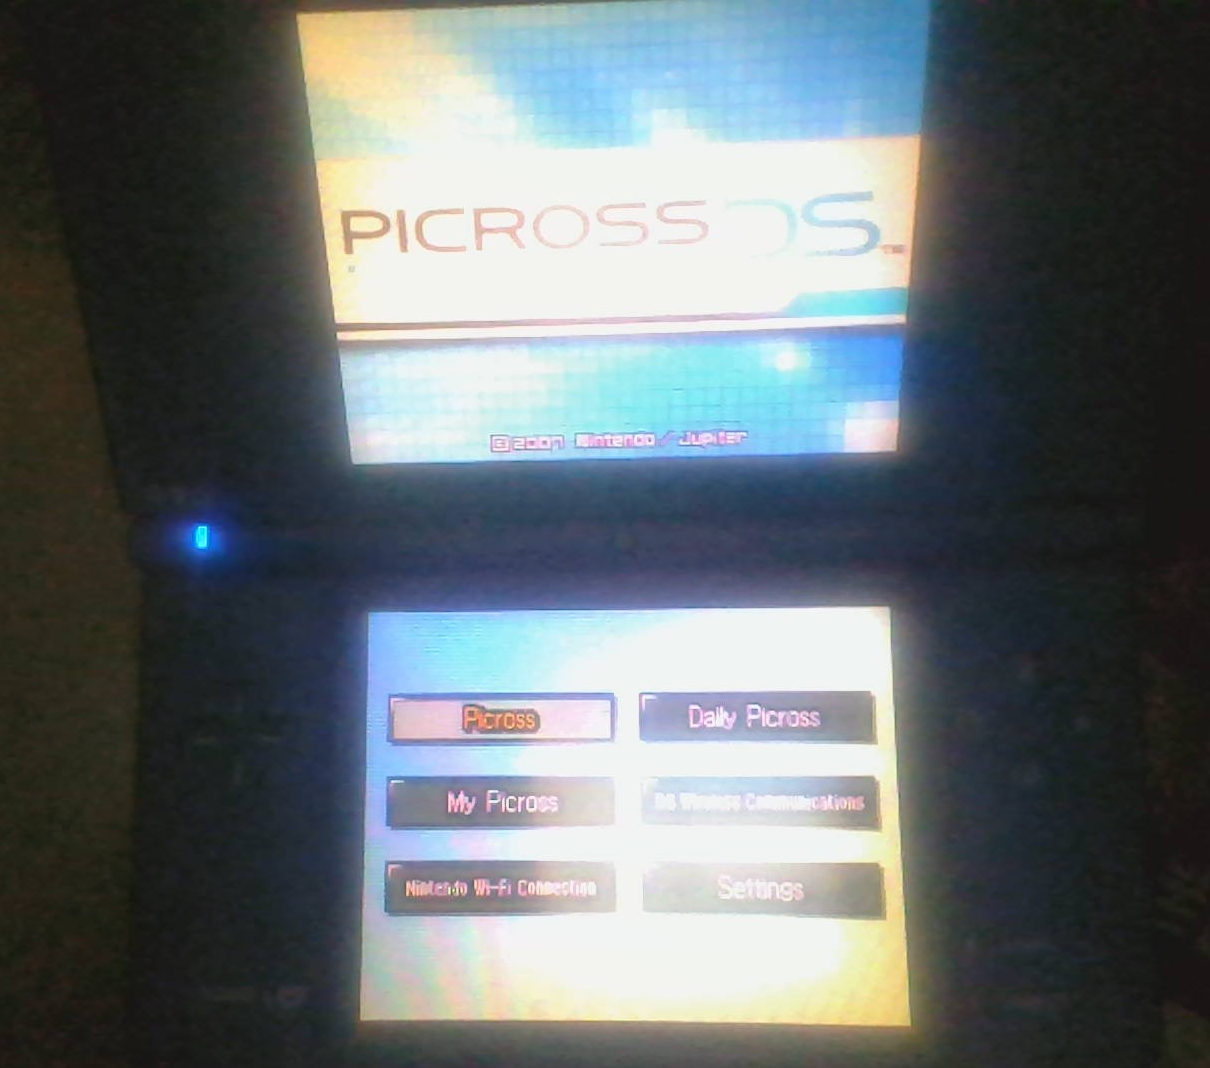 Picross DS does not display top screen · Issue #591 · ahezard/nds